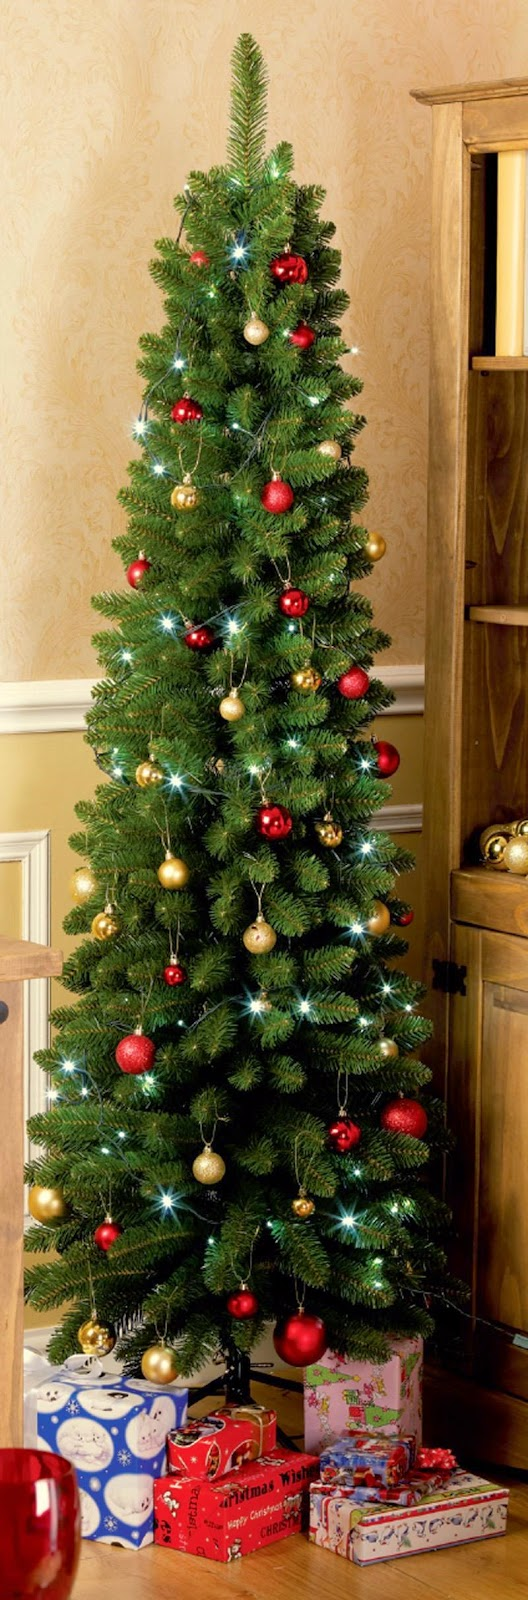 Studio Blog: Christmas Tree Ideas For Small Spaces